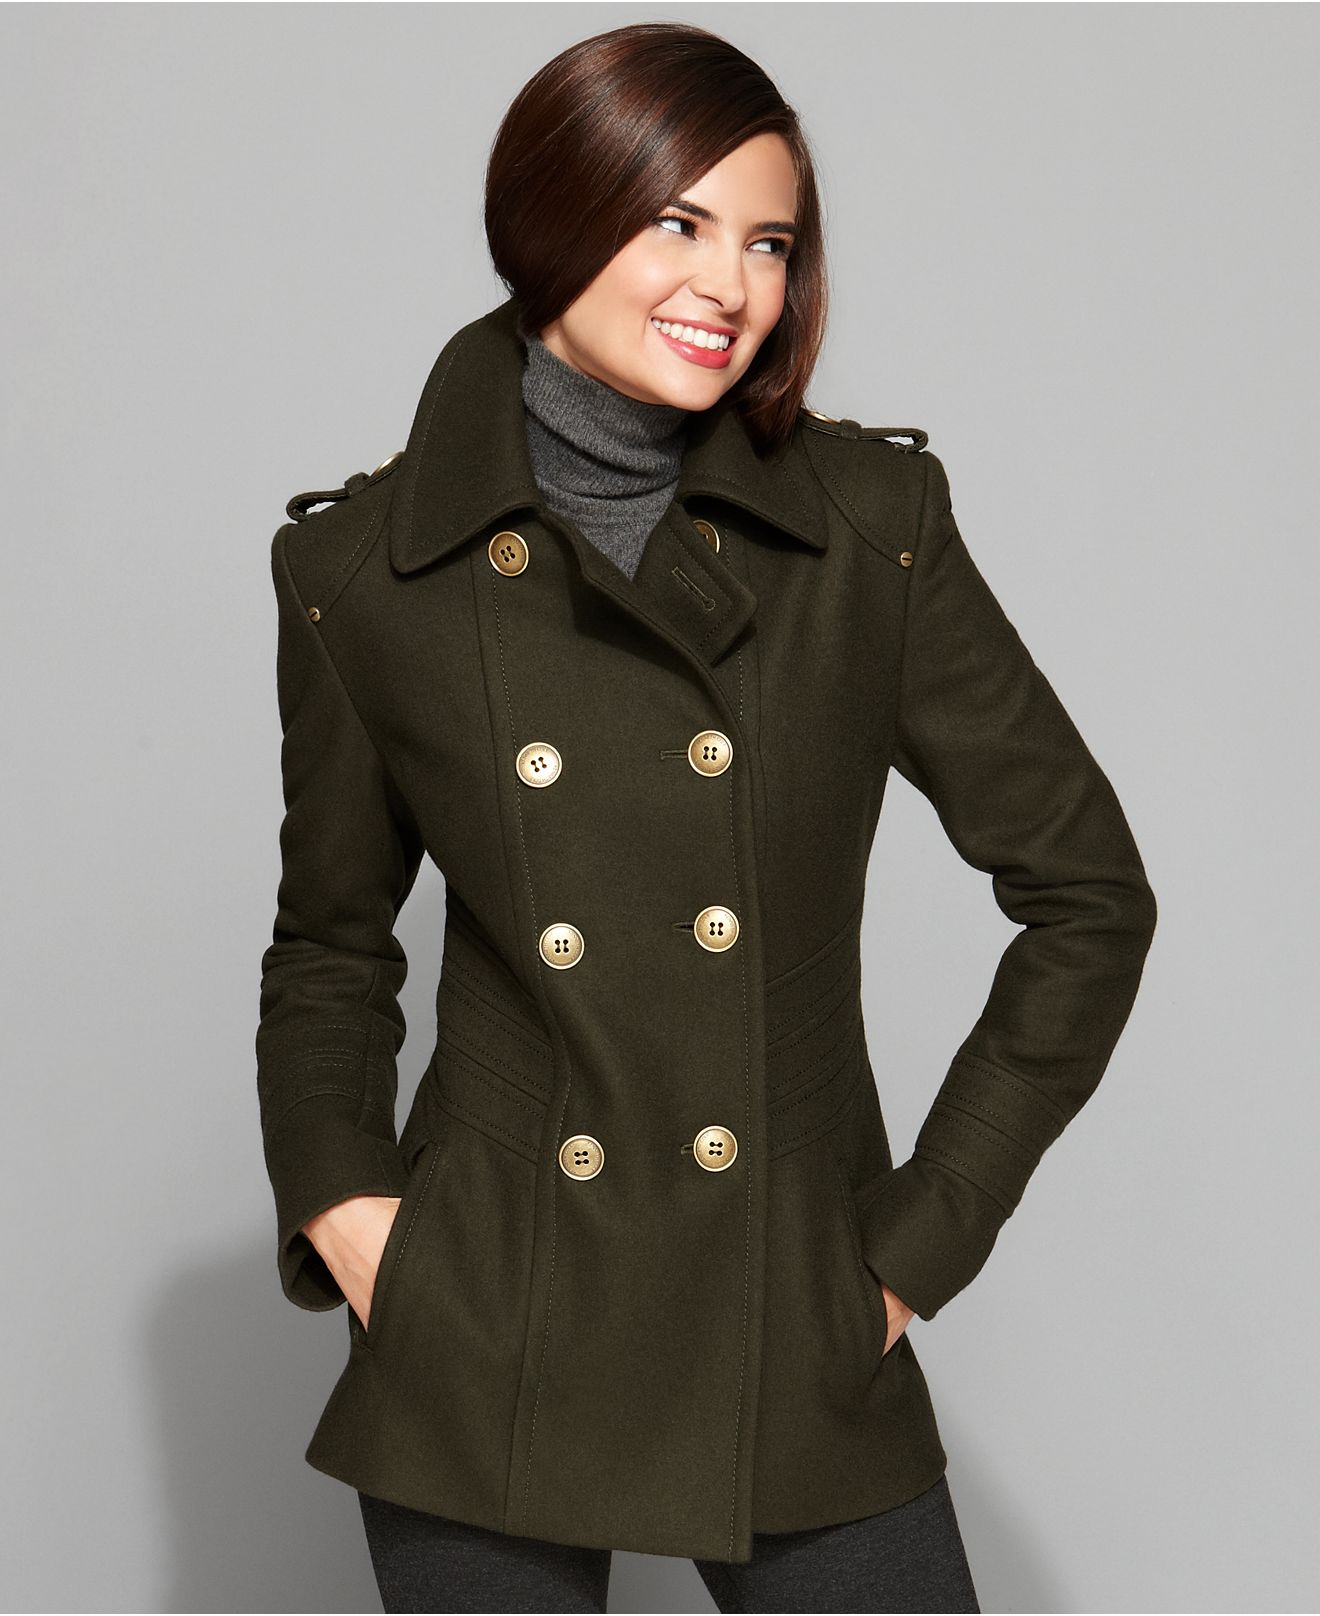 Find great deals on eBay for womens pea coat. Shop with confidence.